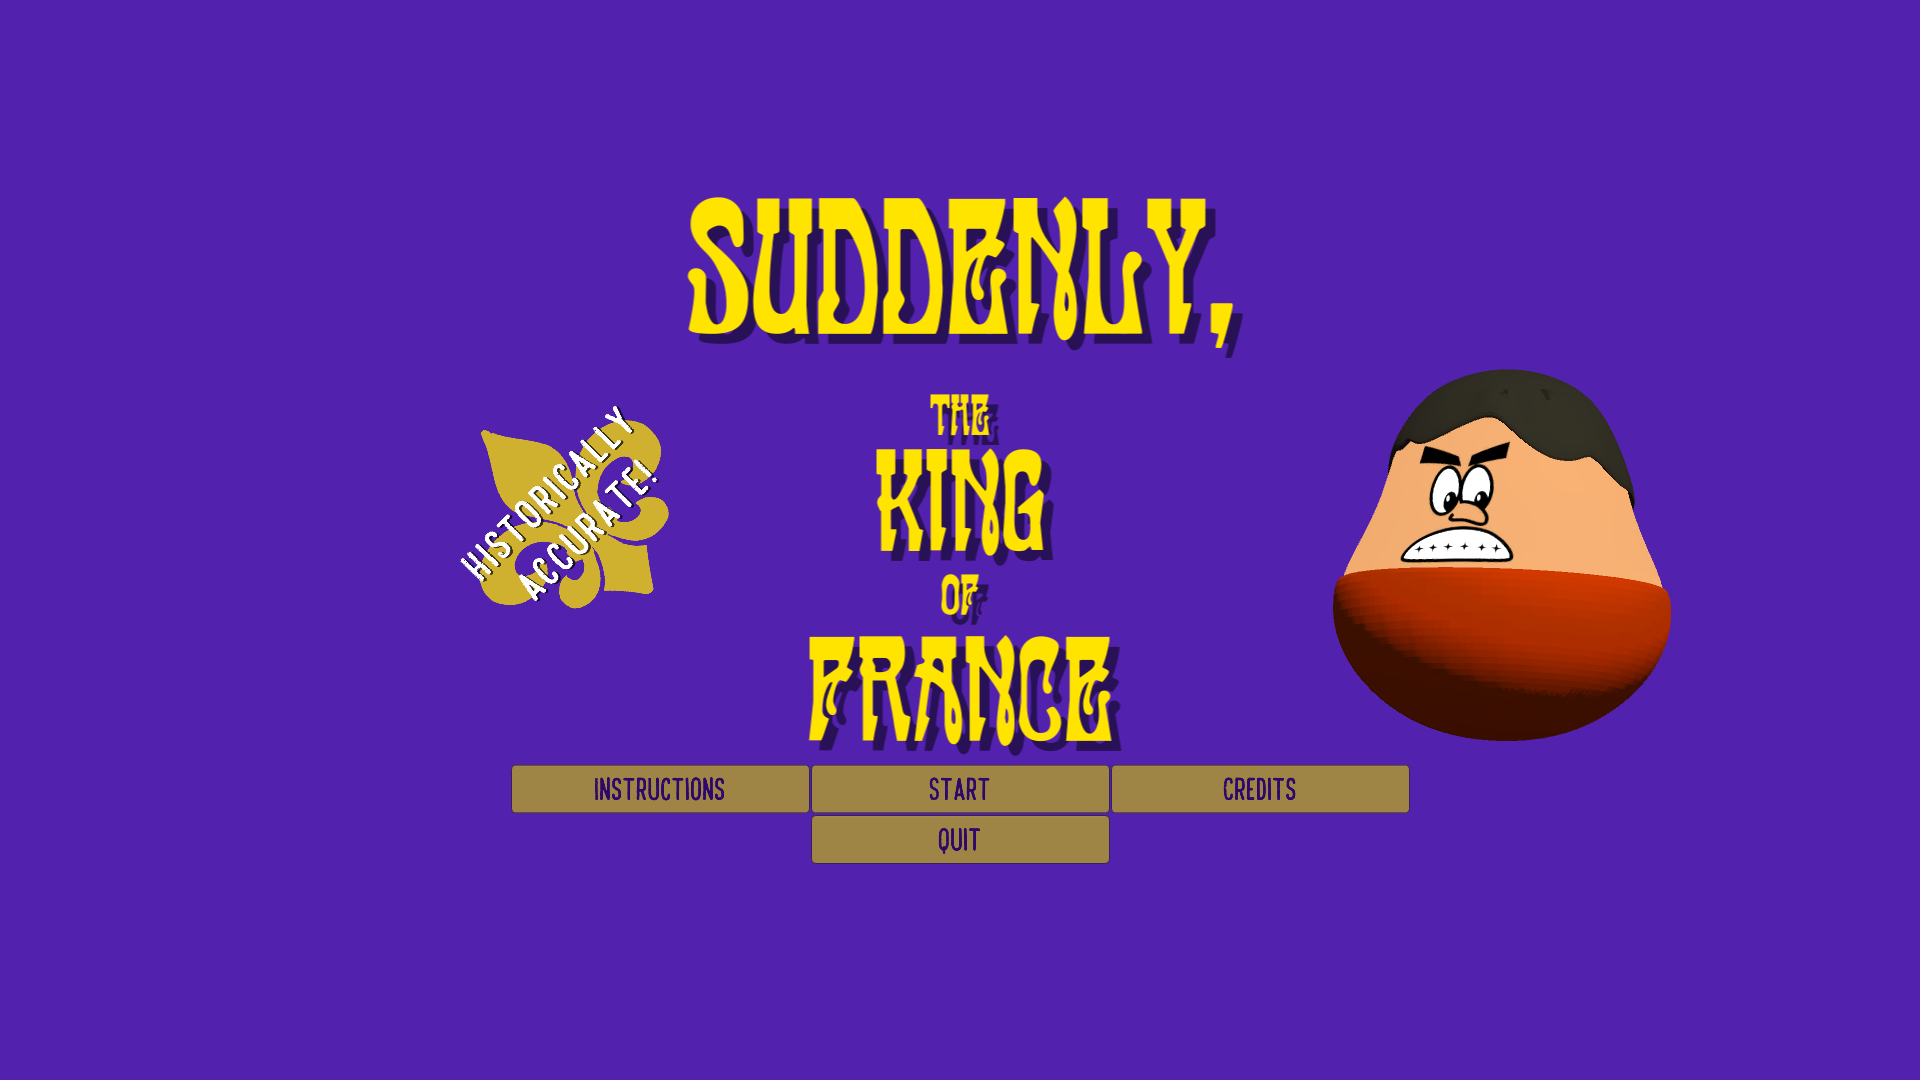 Suddenly, the King of France!